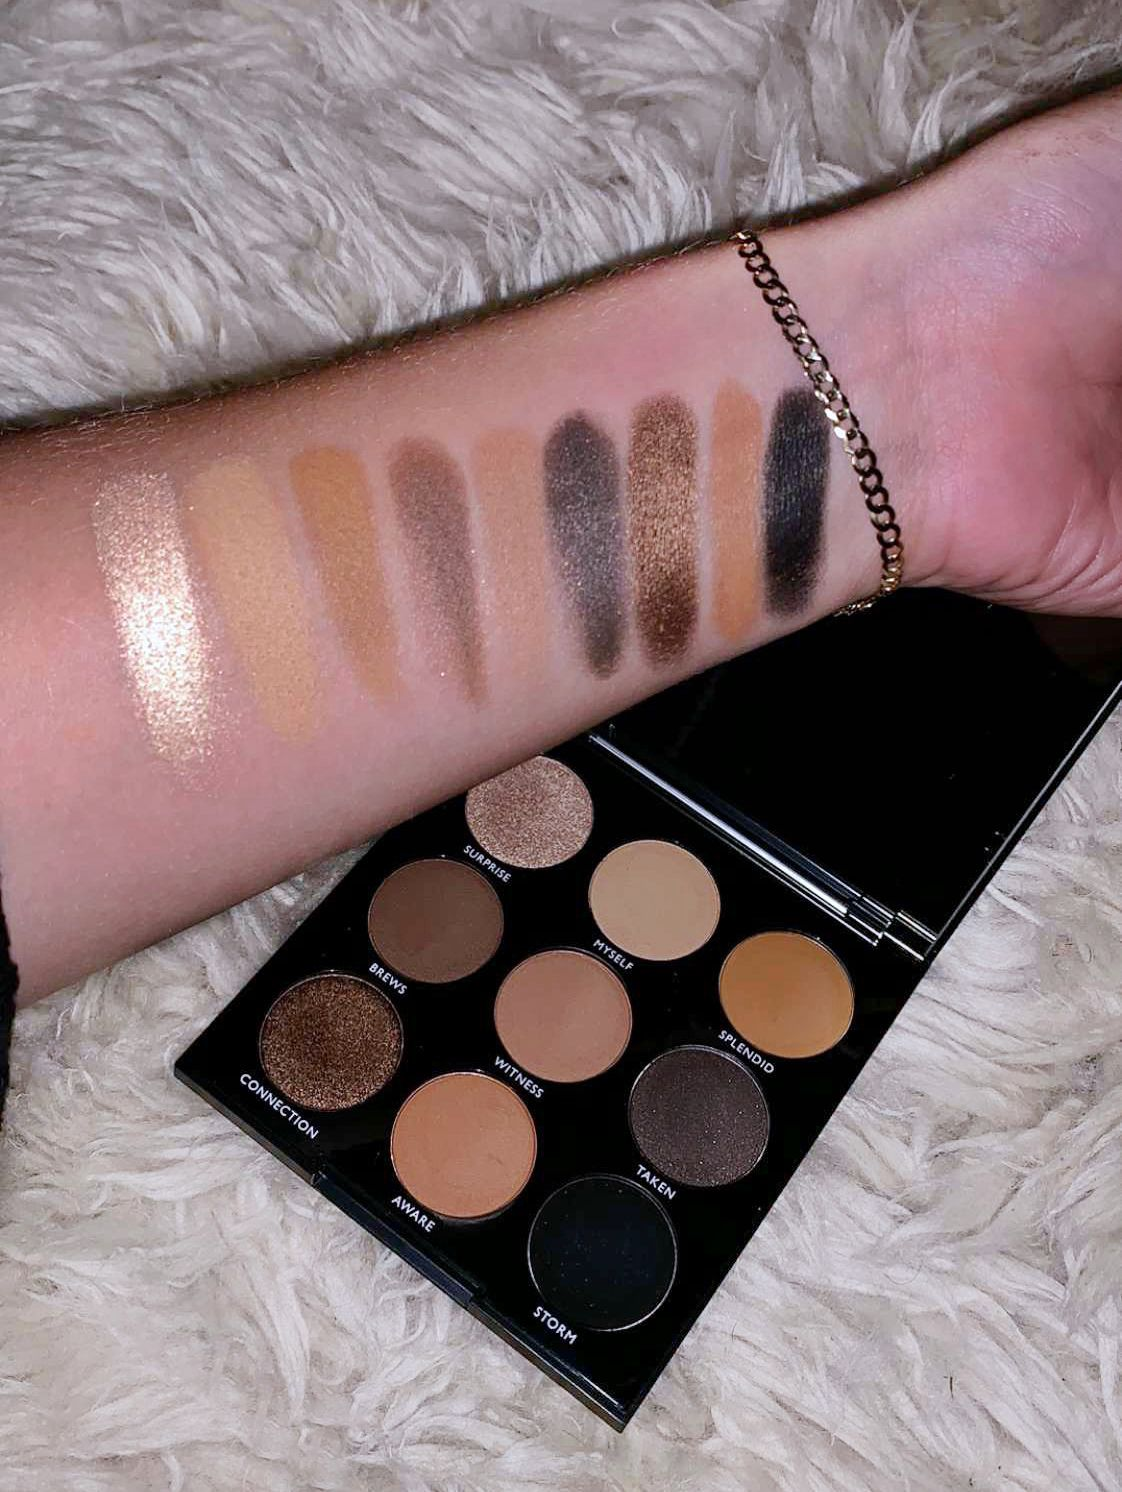 48ceefa8d08 Swatches from #morphe #morphe9A palette   Beat that face, girl in ...